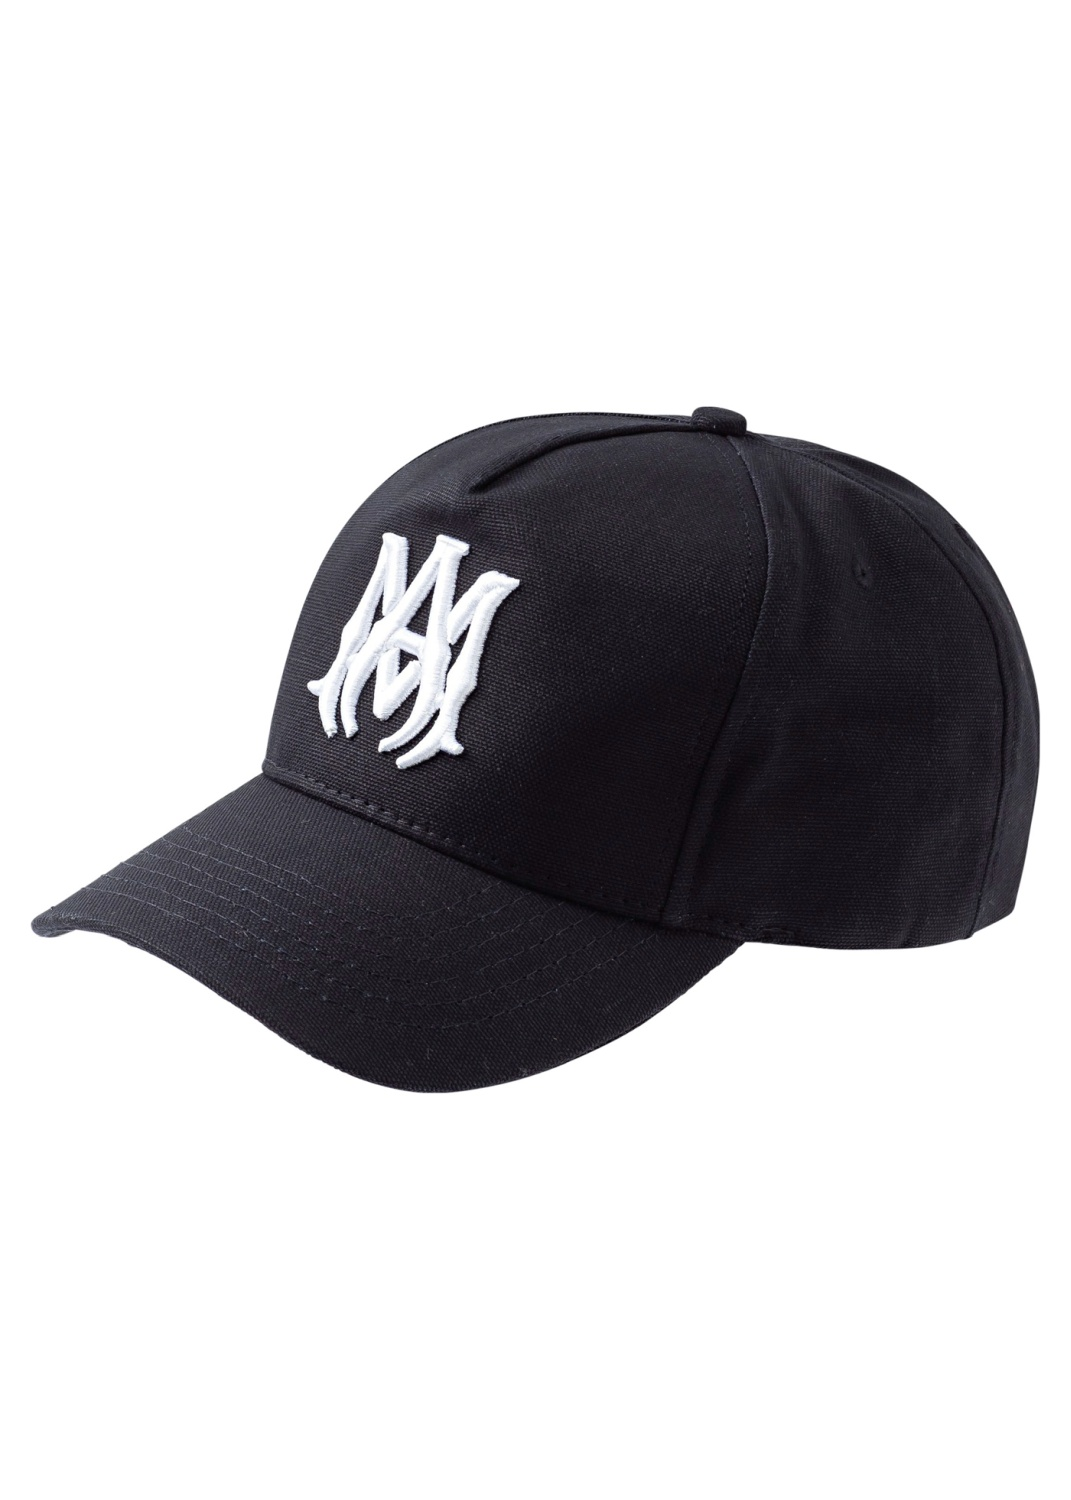 MA FULL CANVAS HAT image number 0